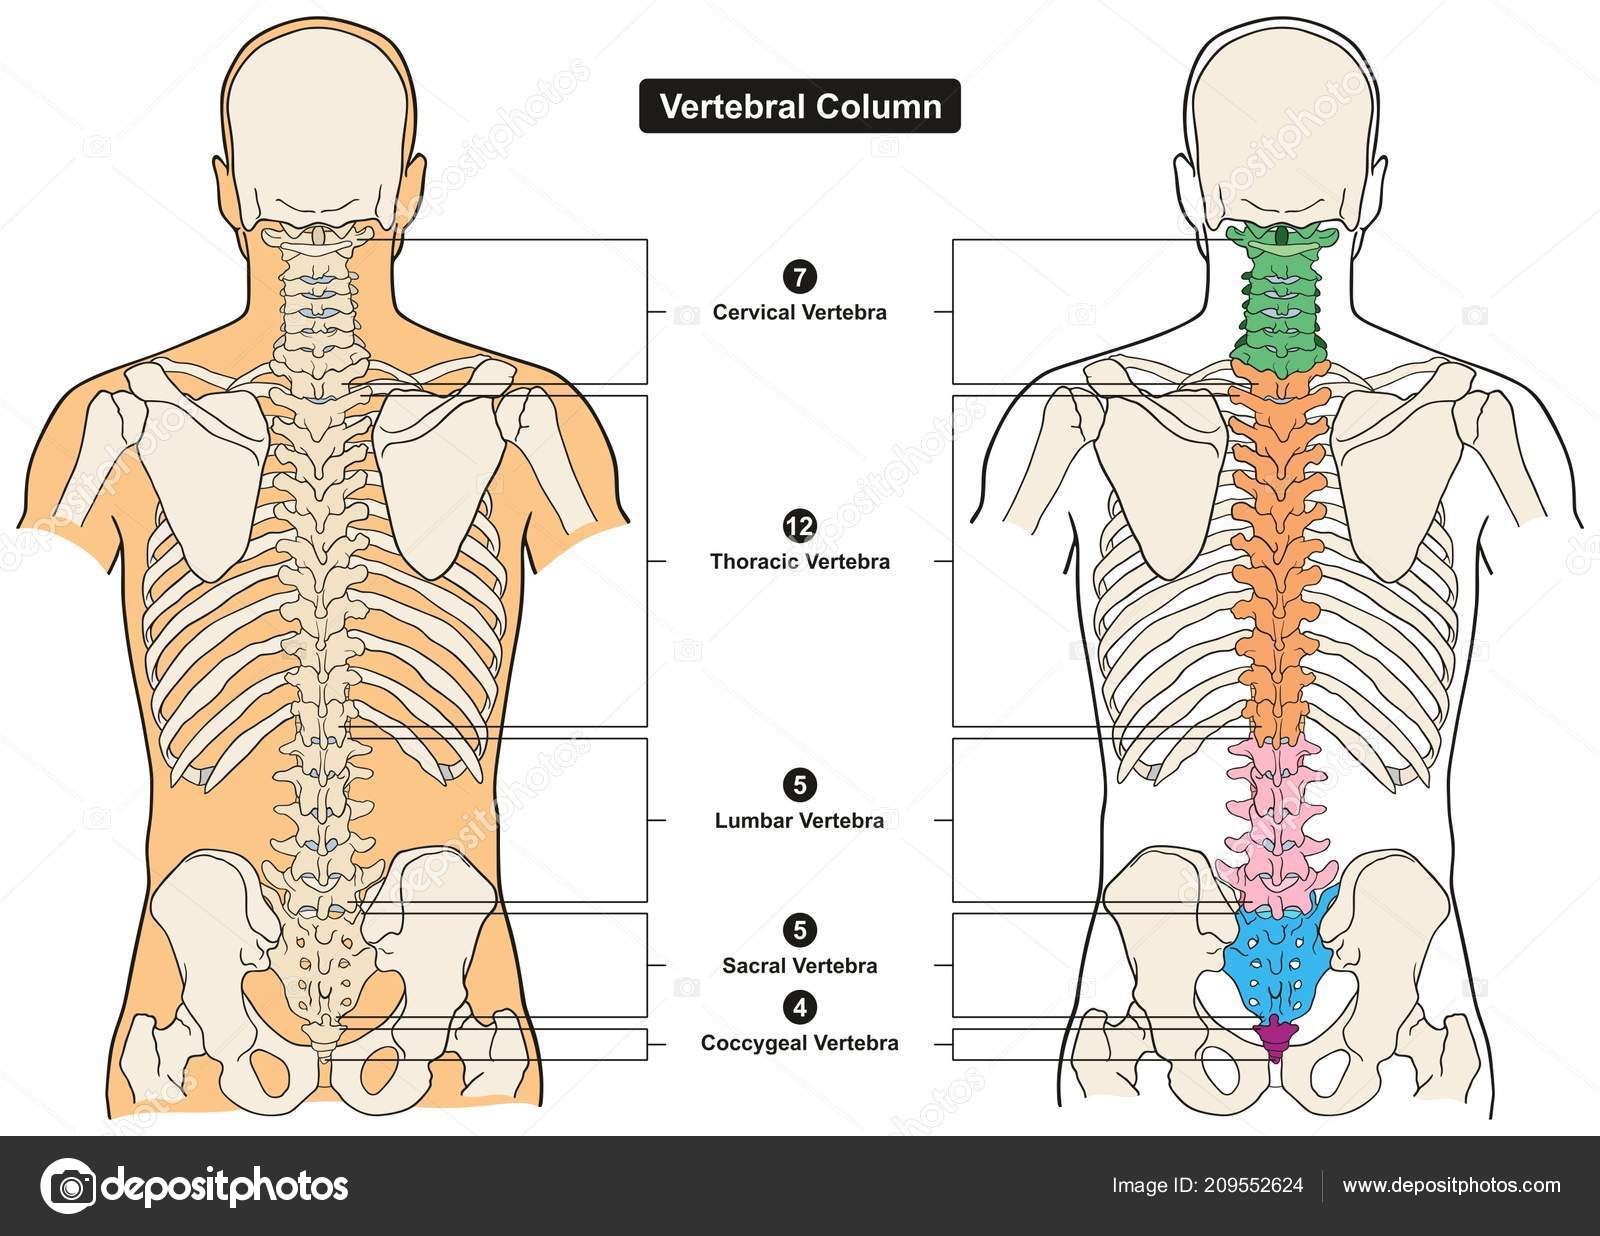 Vertebral Column Human Body Anatomy Infograpic Diagram Including All